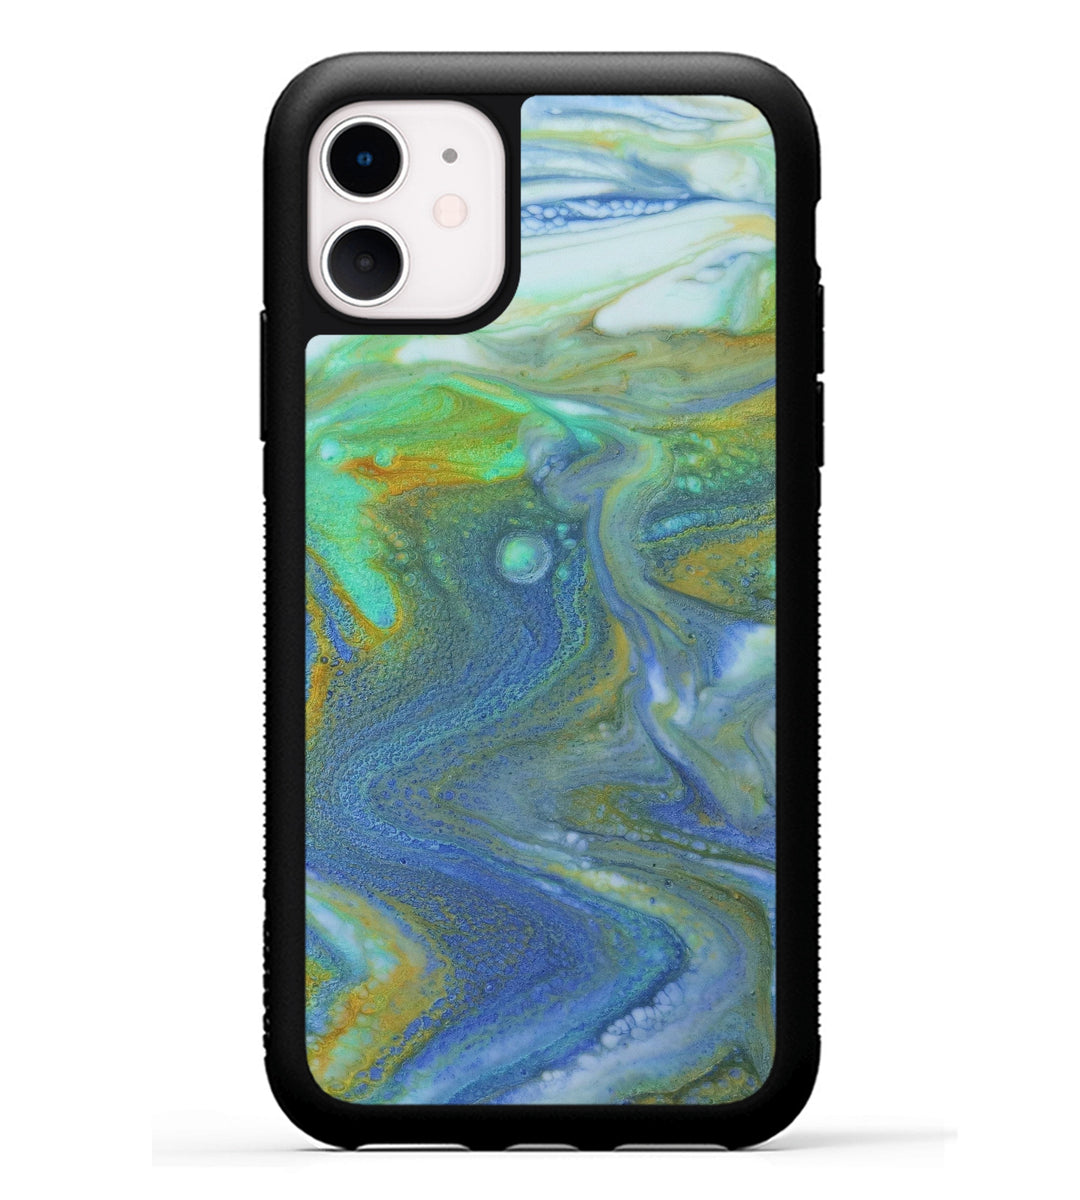 iPhone 11 Case - Zahid (Teal & Gold, 346656)